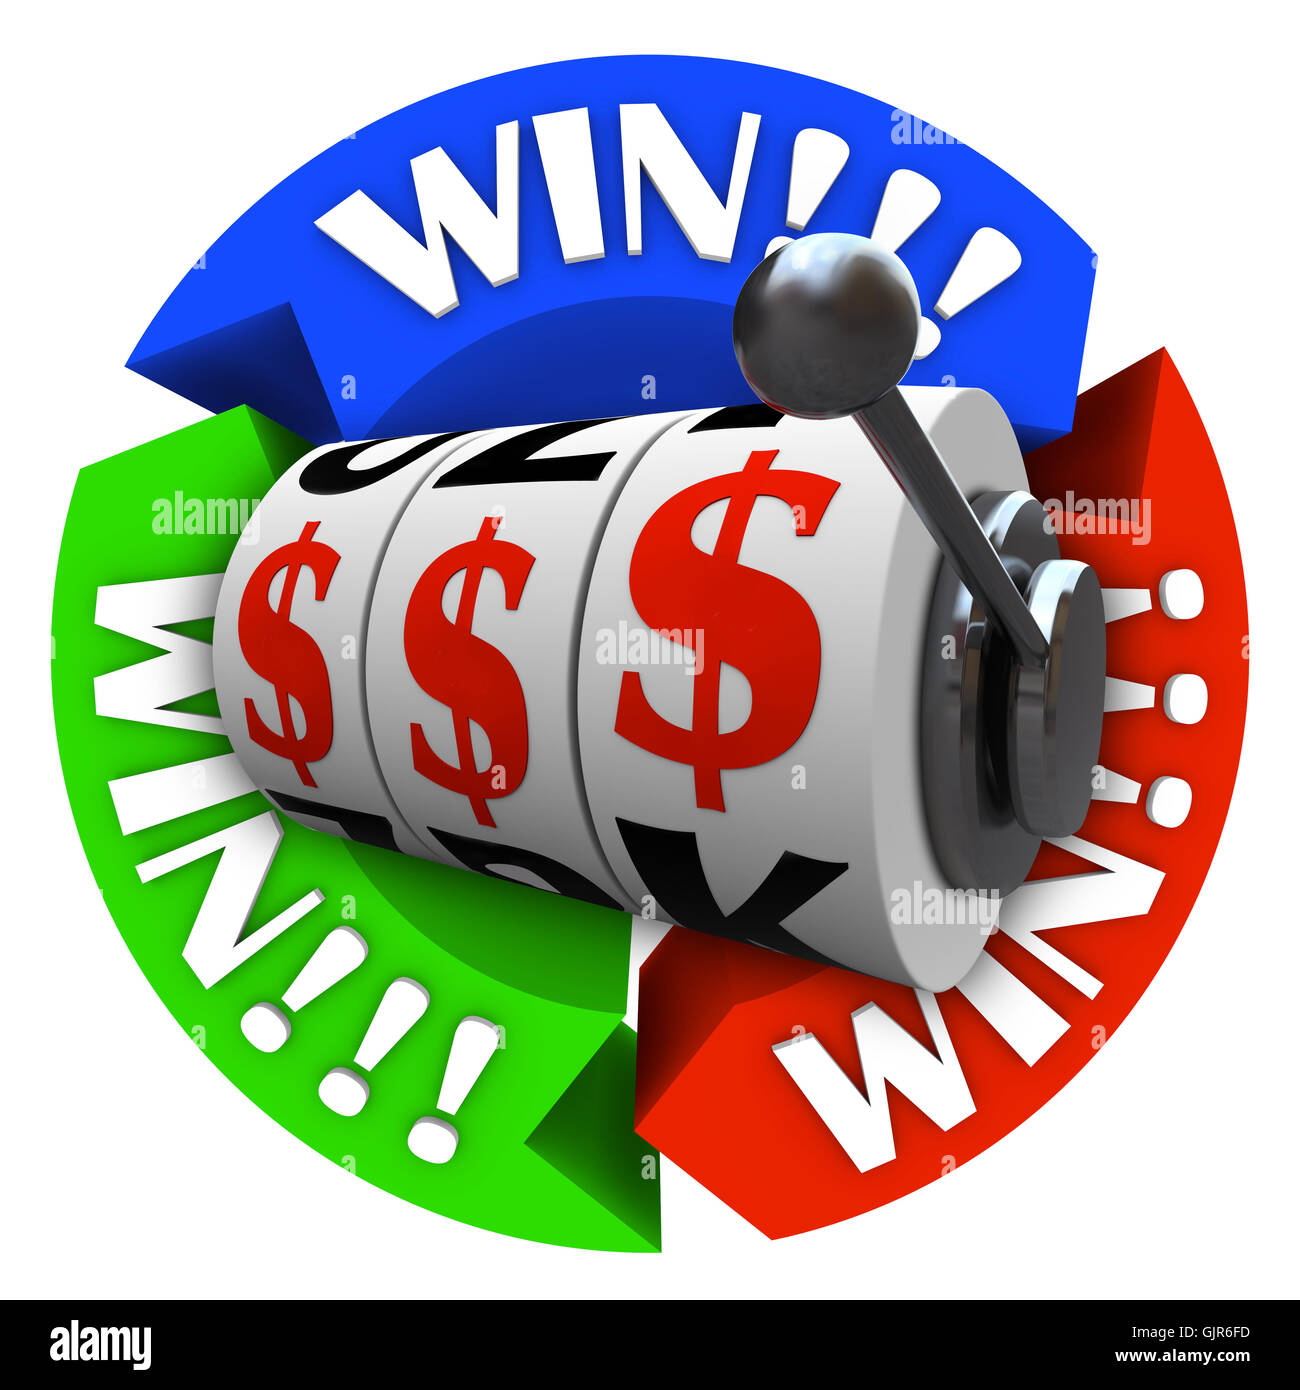 Win Circle with Slot Machine Wheels and Money Signs - Stock Image